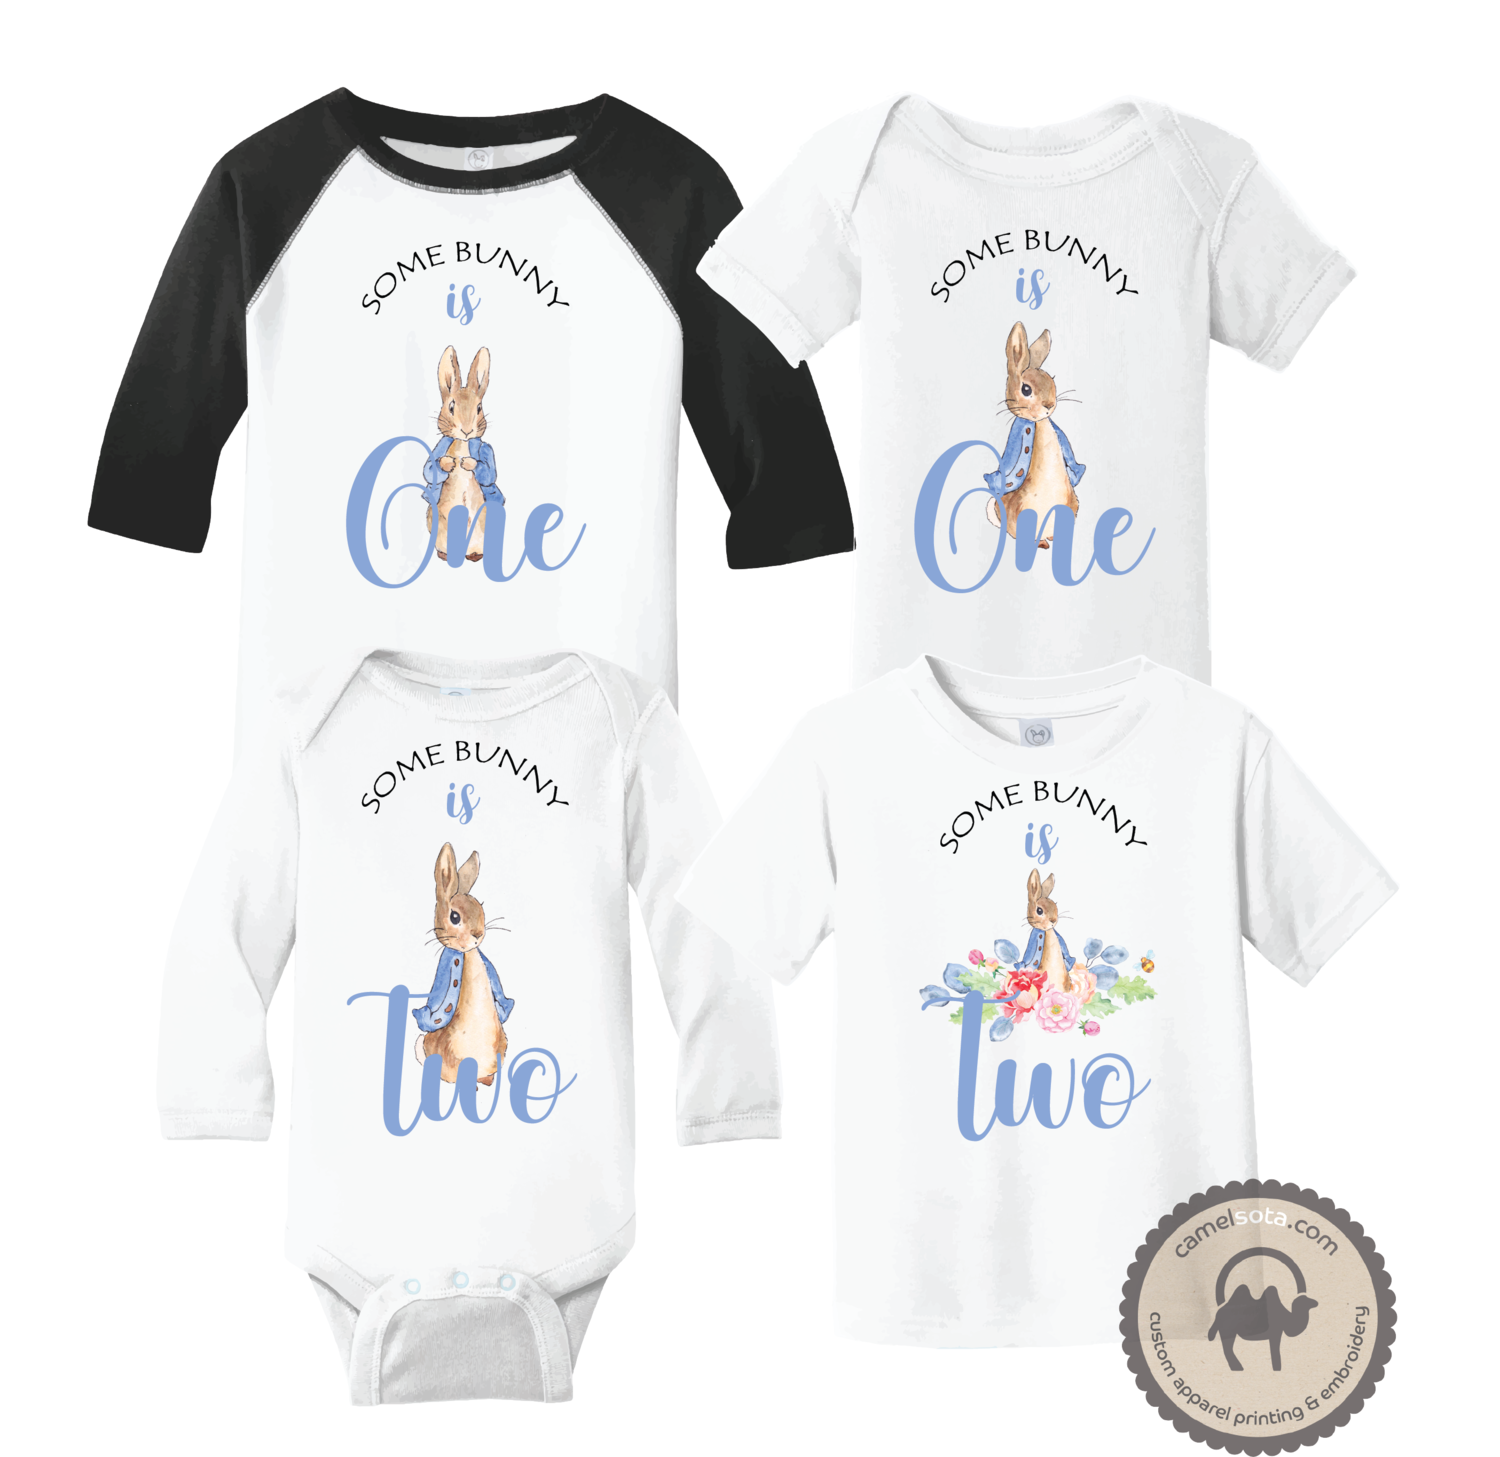 Peter Rabbit Shirt - Peter Rabbit Baby Toddler Birthday Shirt